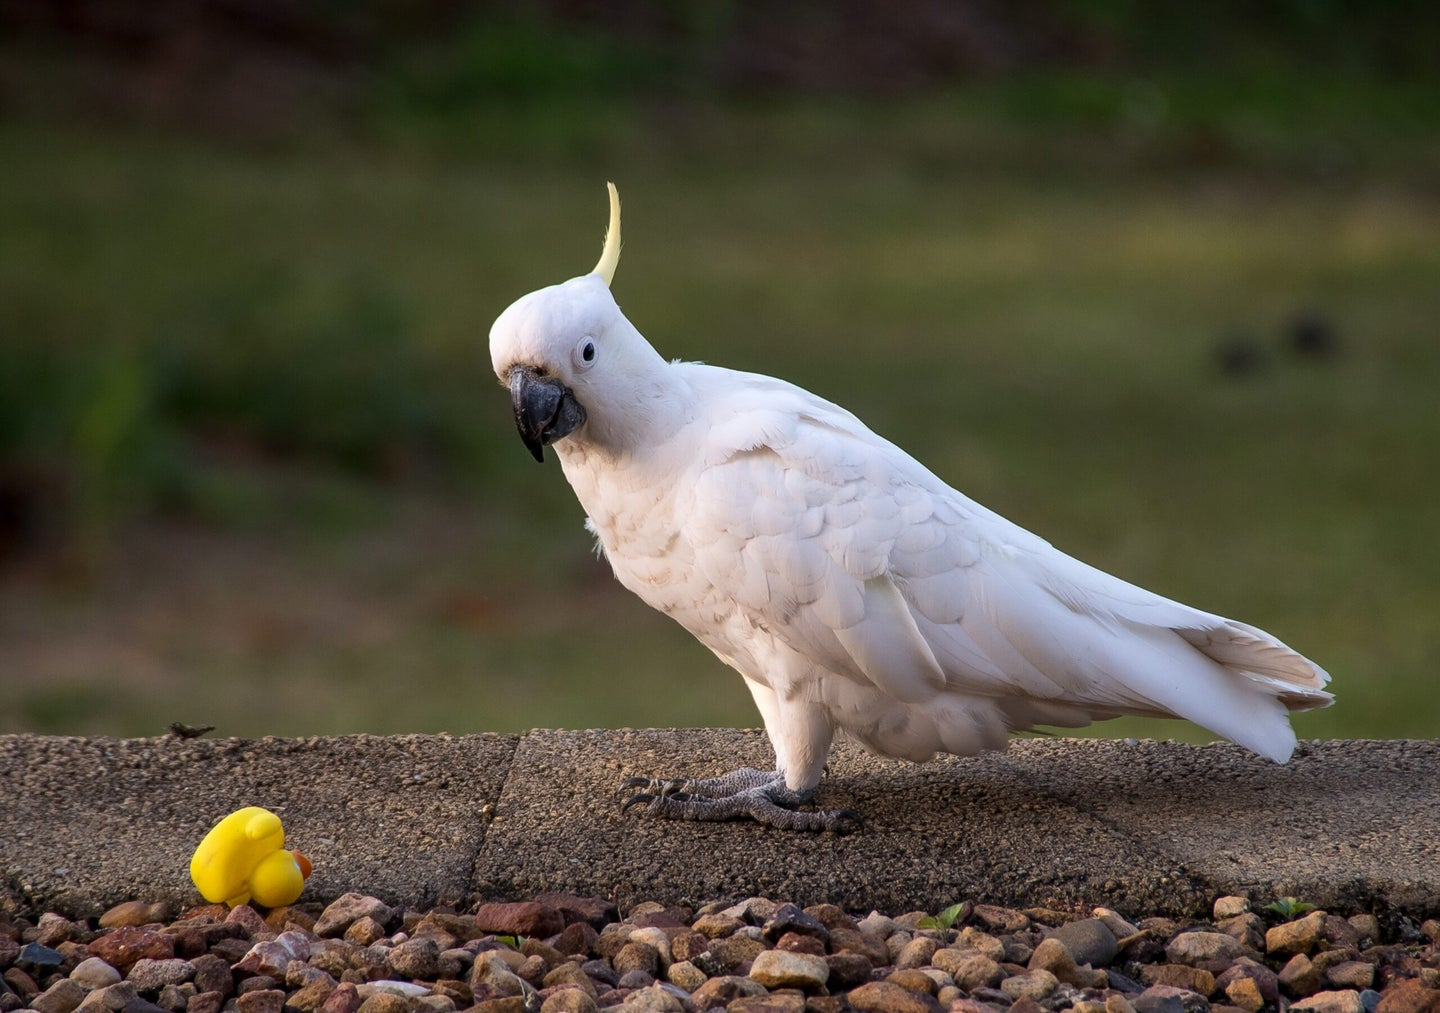 a sulfur-crested cockatoo perched on a wall